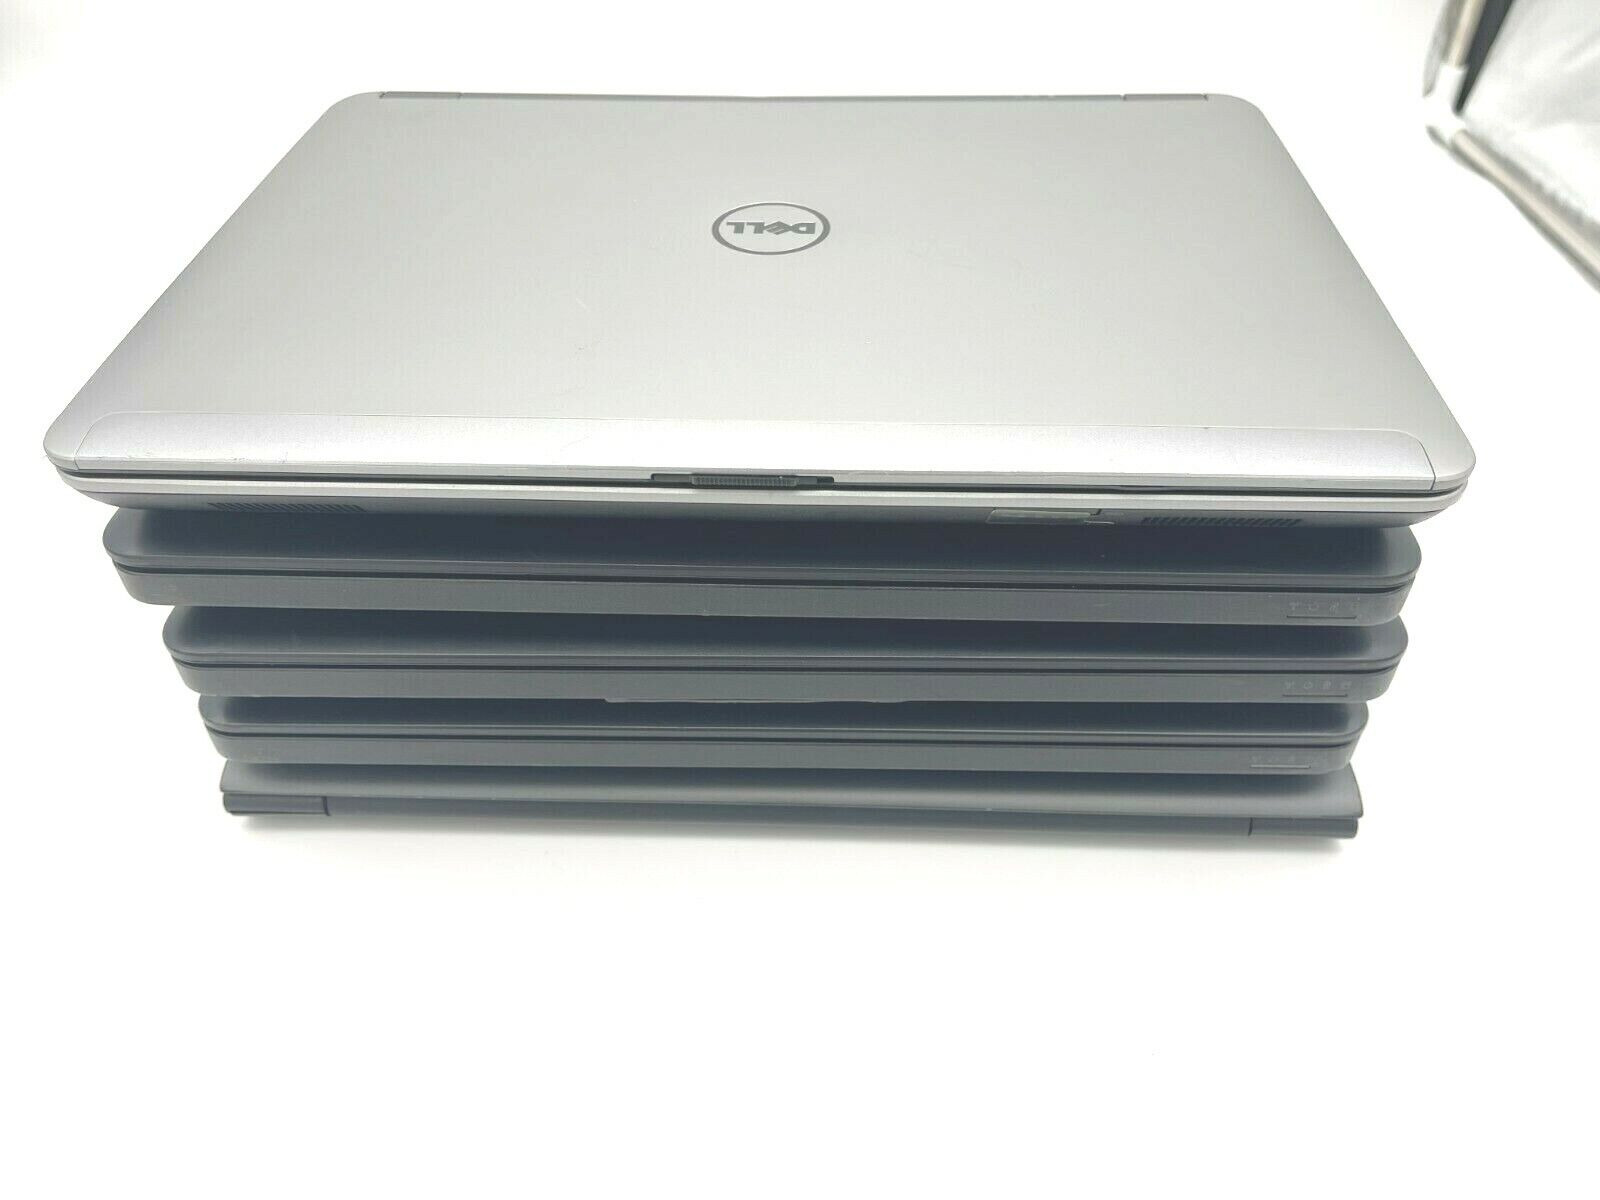 lot of 5 Dell i-series laptops (see details for specs). Buy it now for 840.00